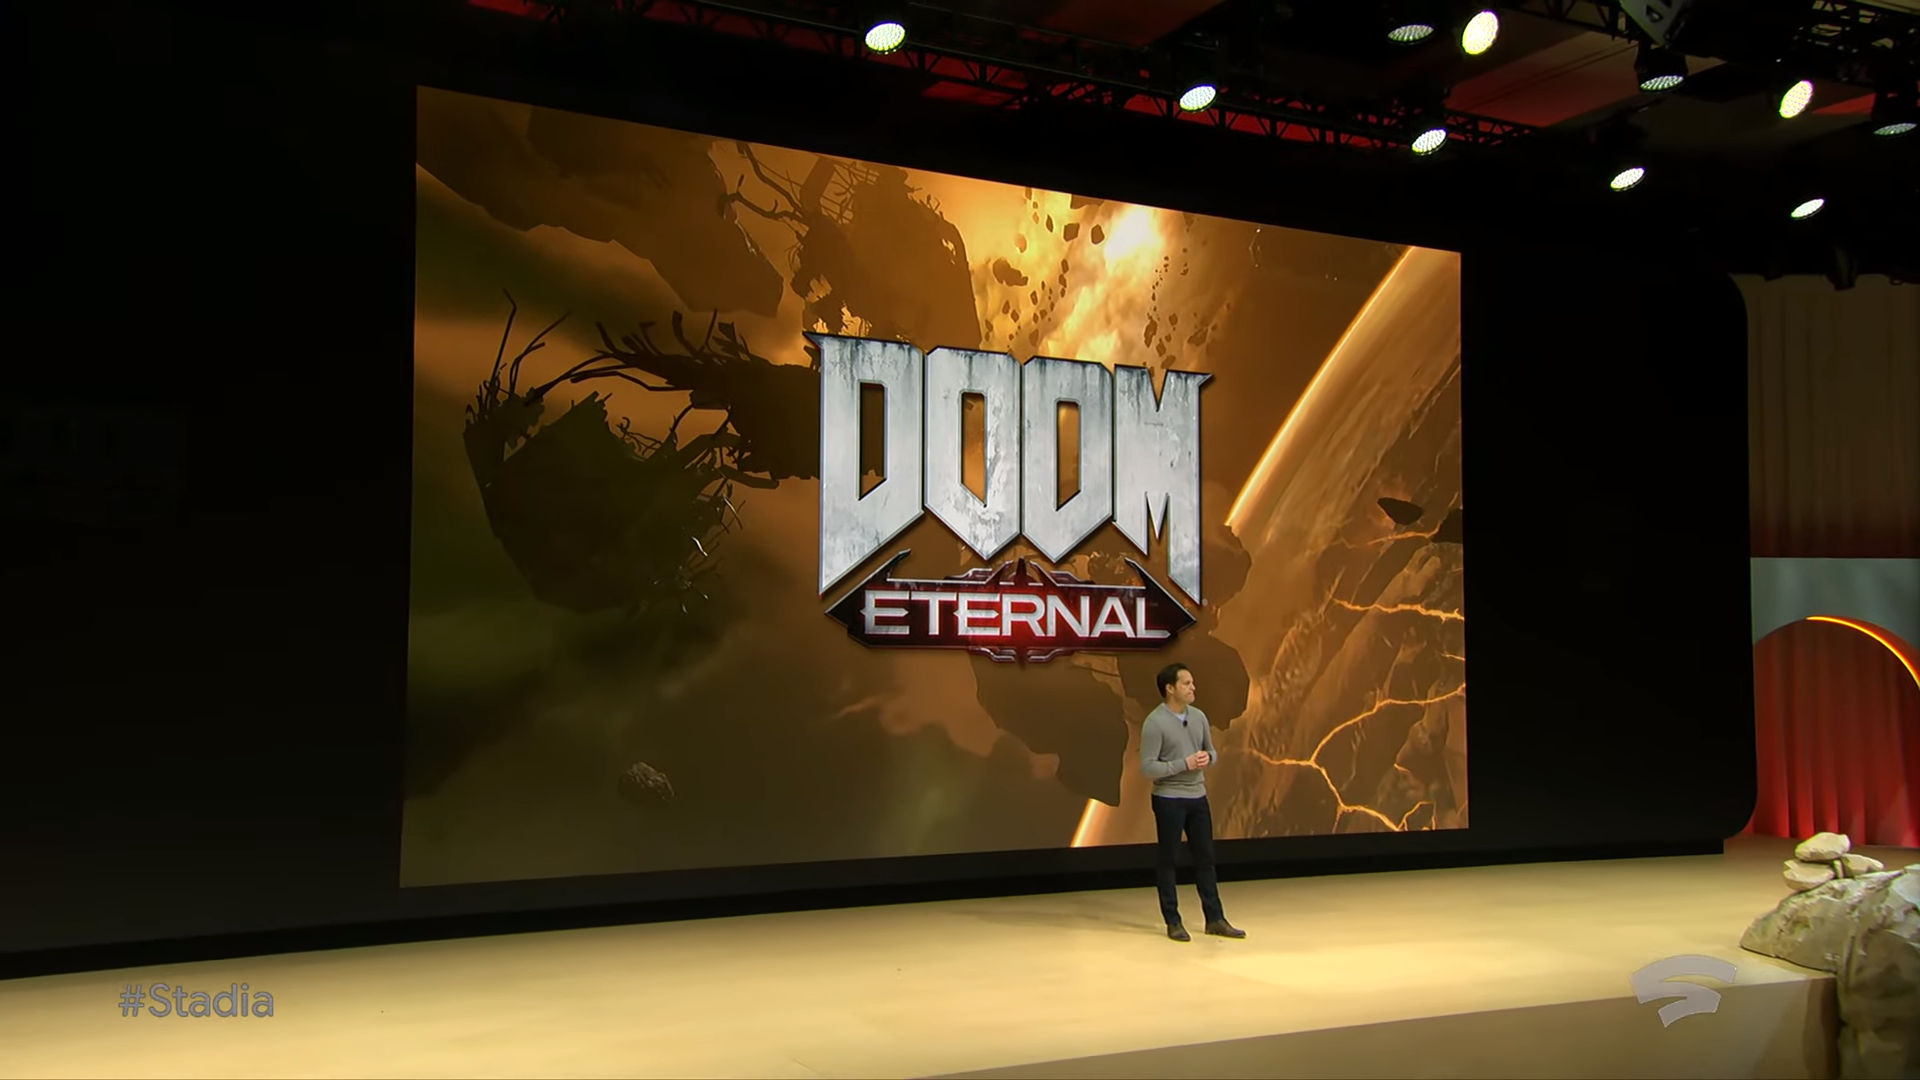 DOOM Eternal is the only upcoming game confirmed to already be running on Stadia.